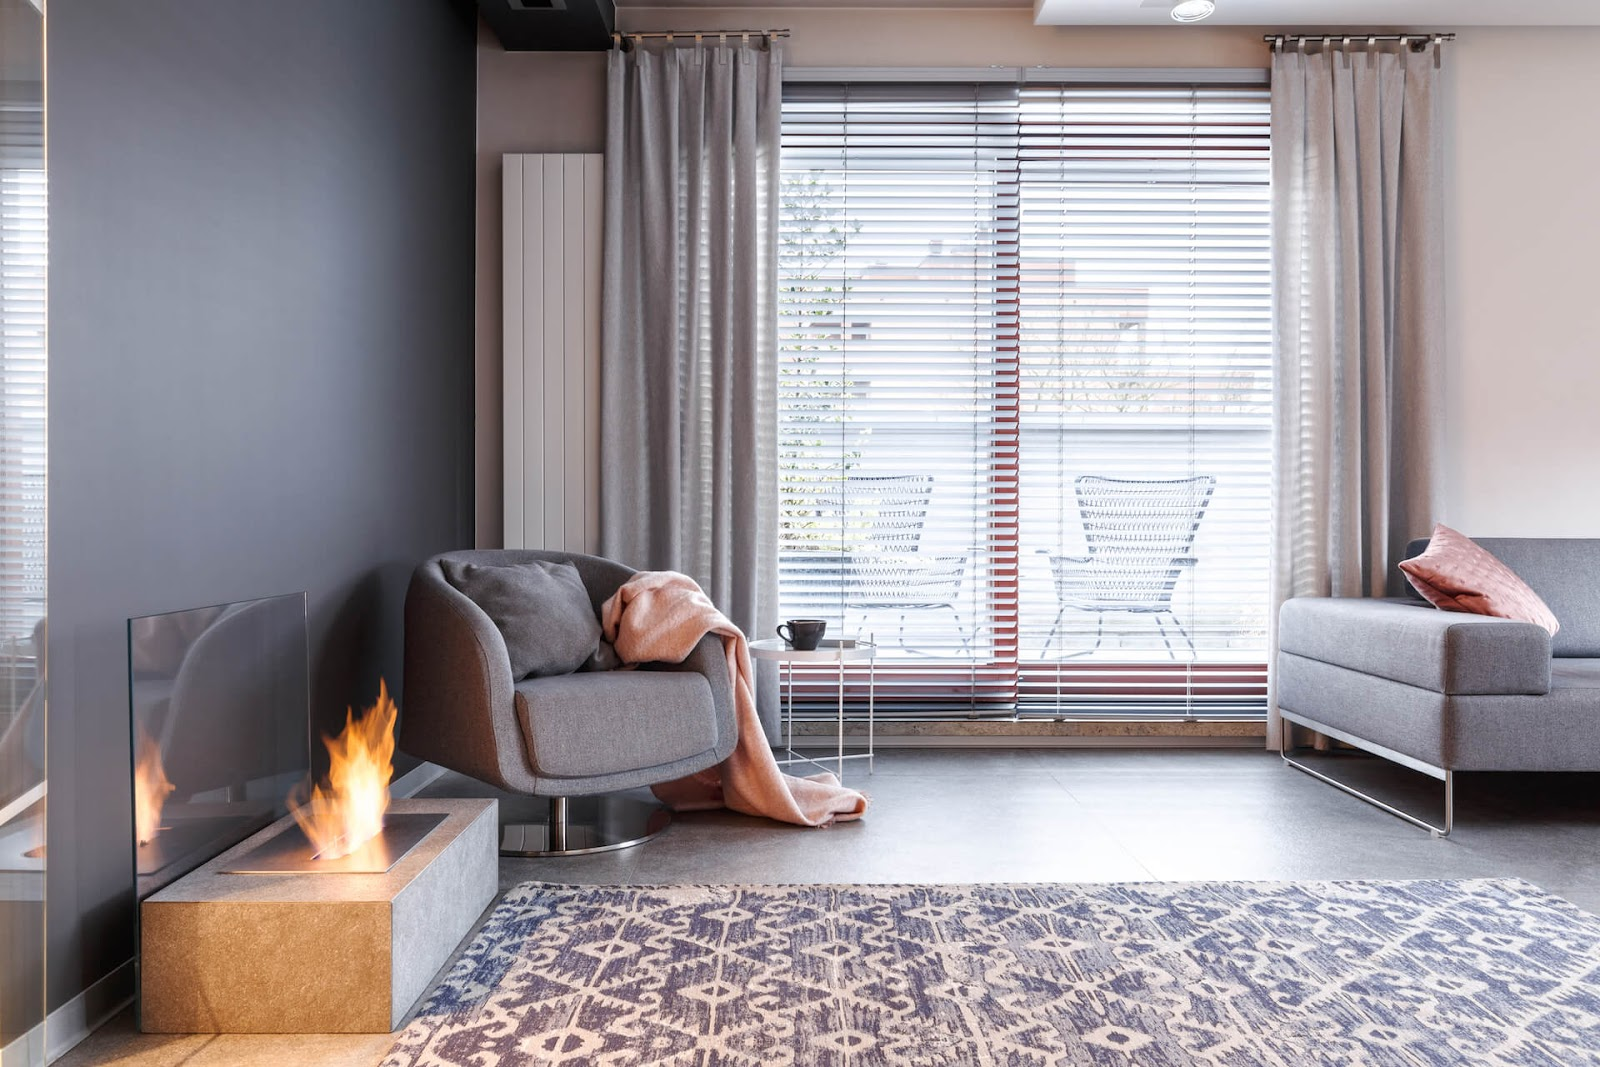 Modern living room with fireplace and stationary curtain panels